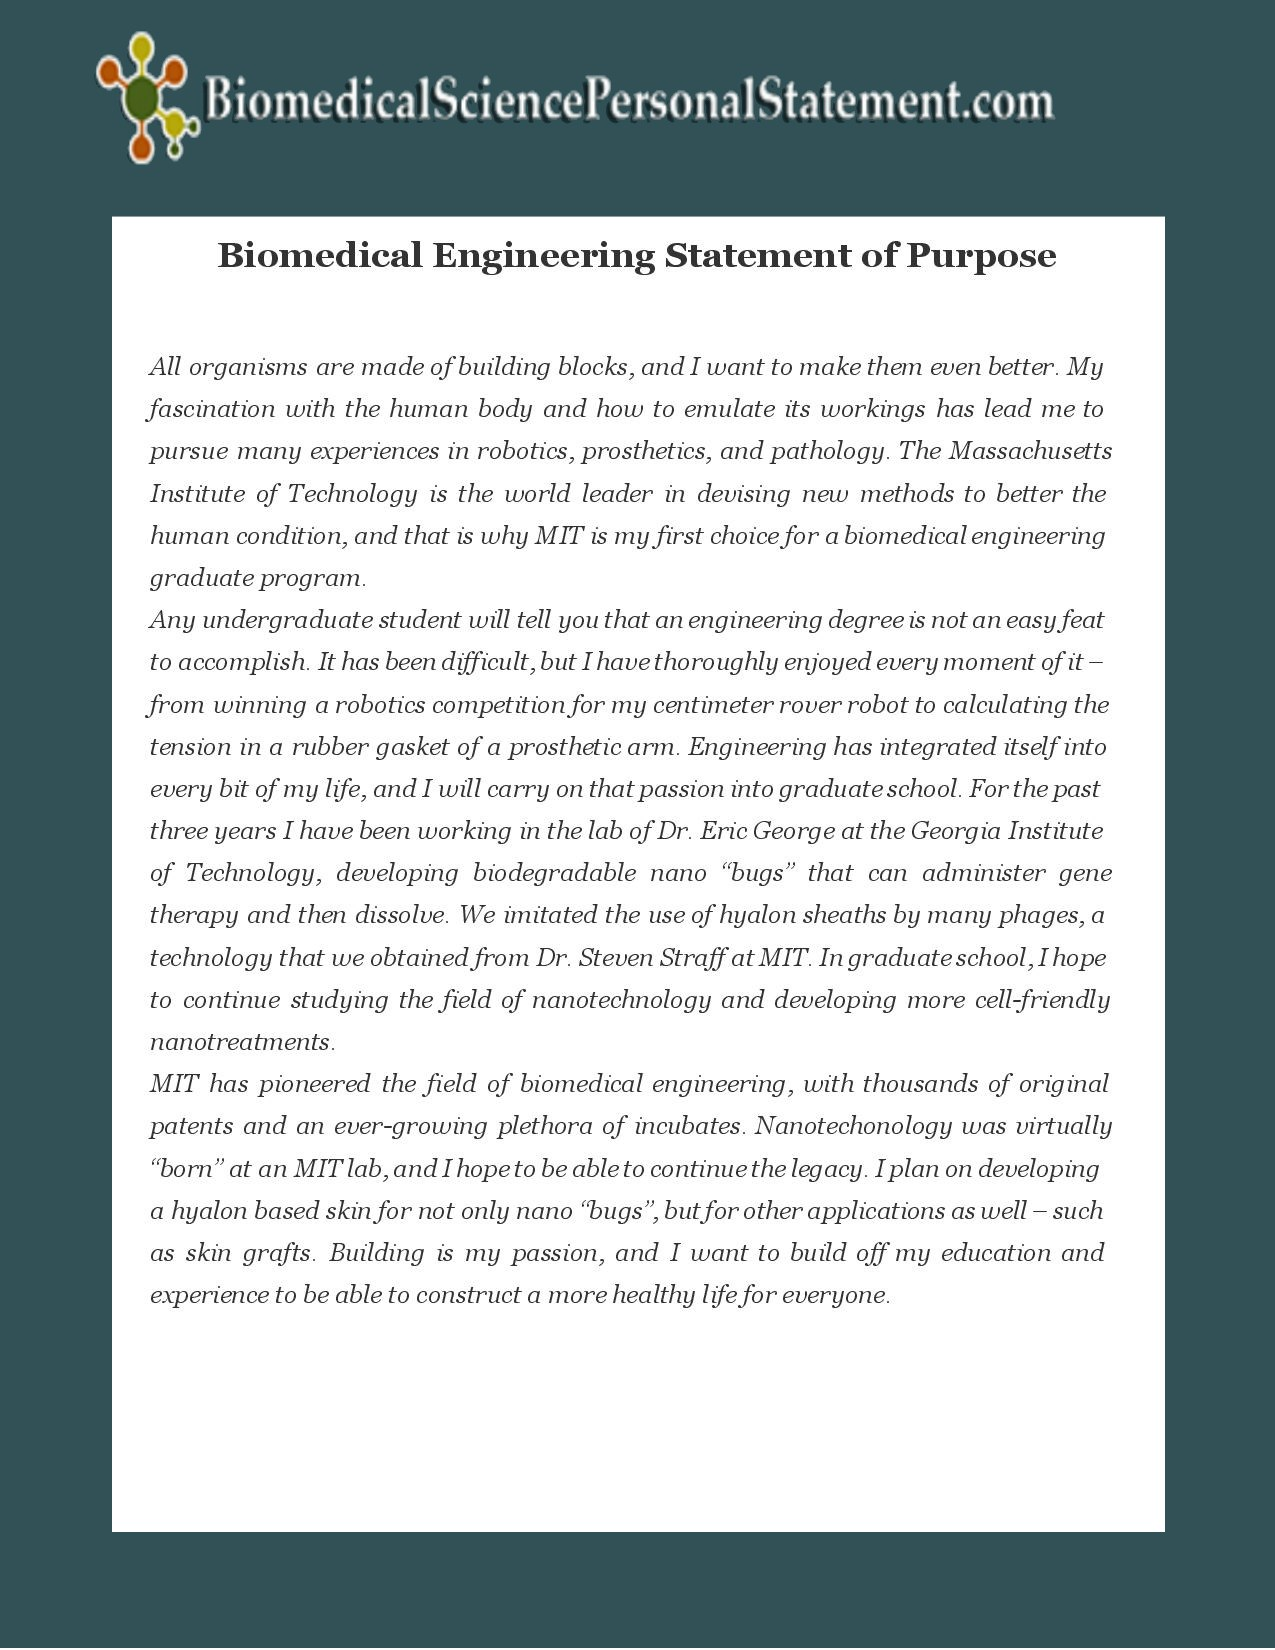 008 Essay Example Engineering Sample Sop For Breathtaking Wvu Contest Topics Texas A&m Length Full